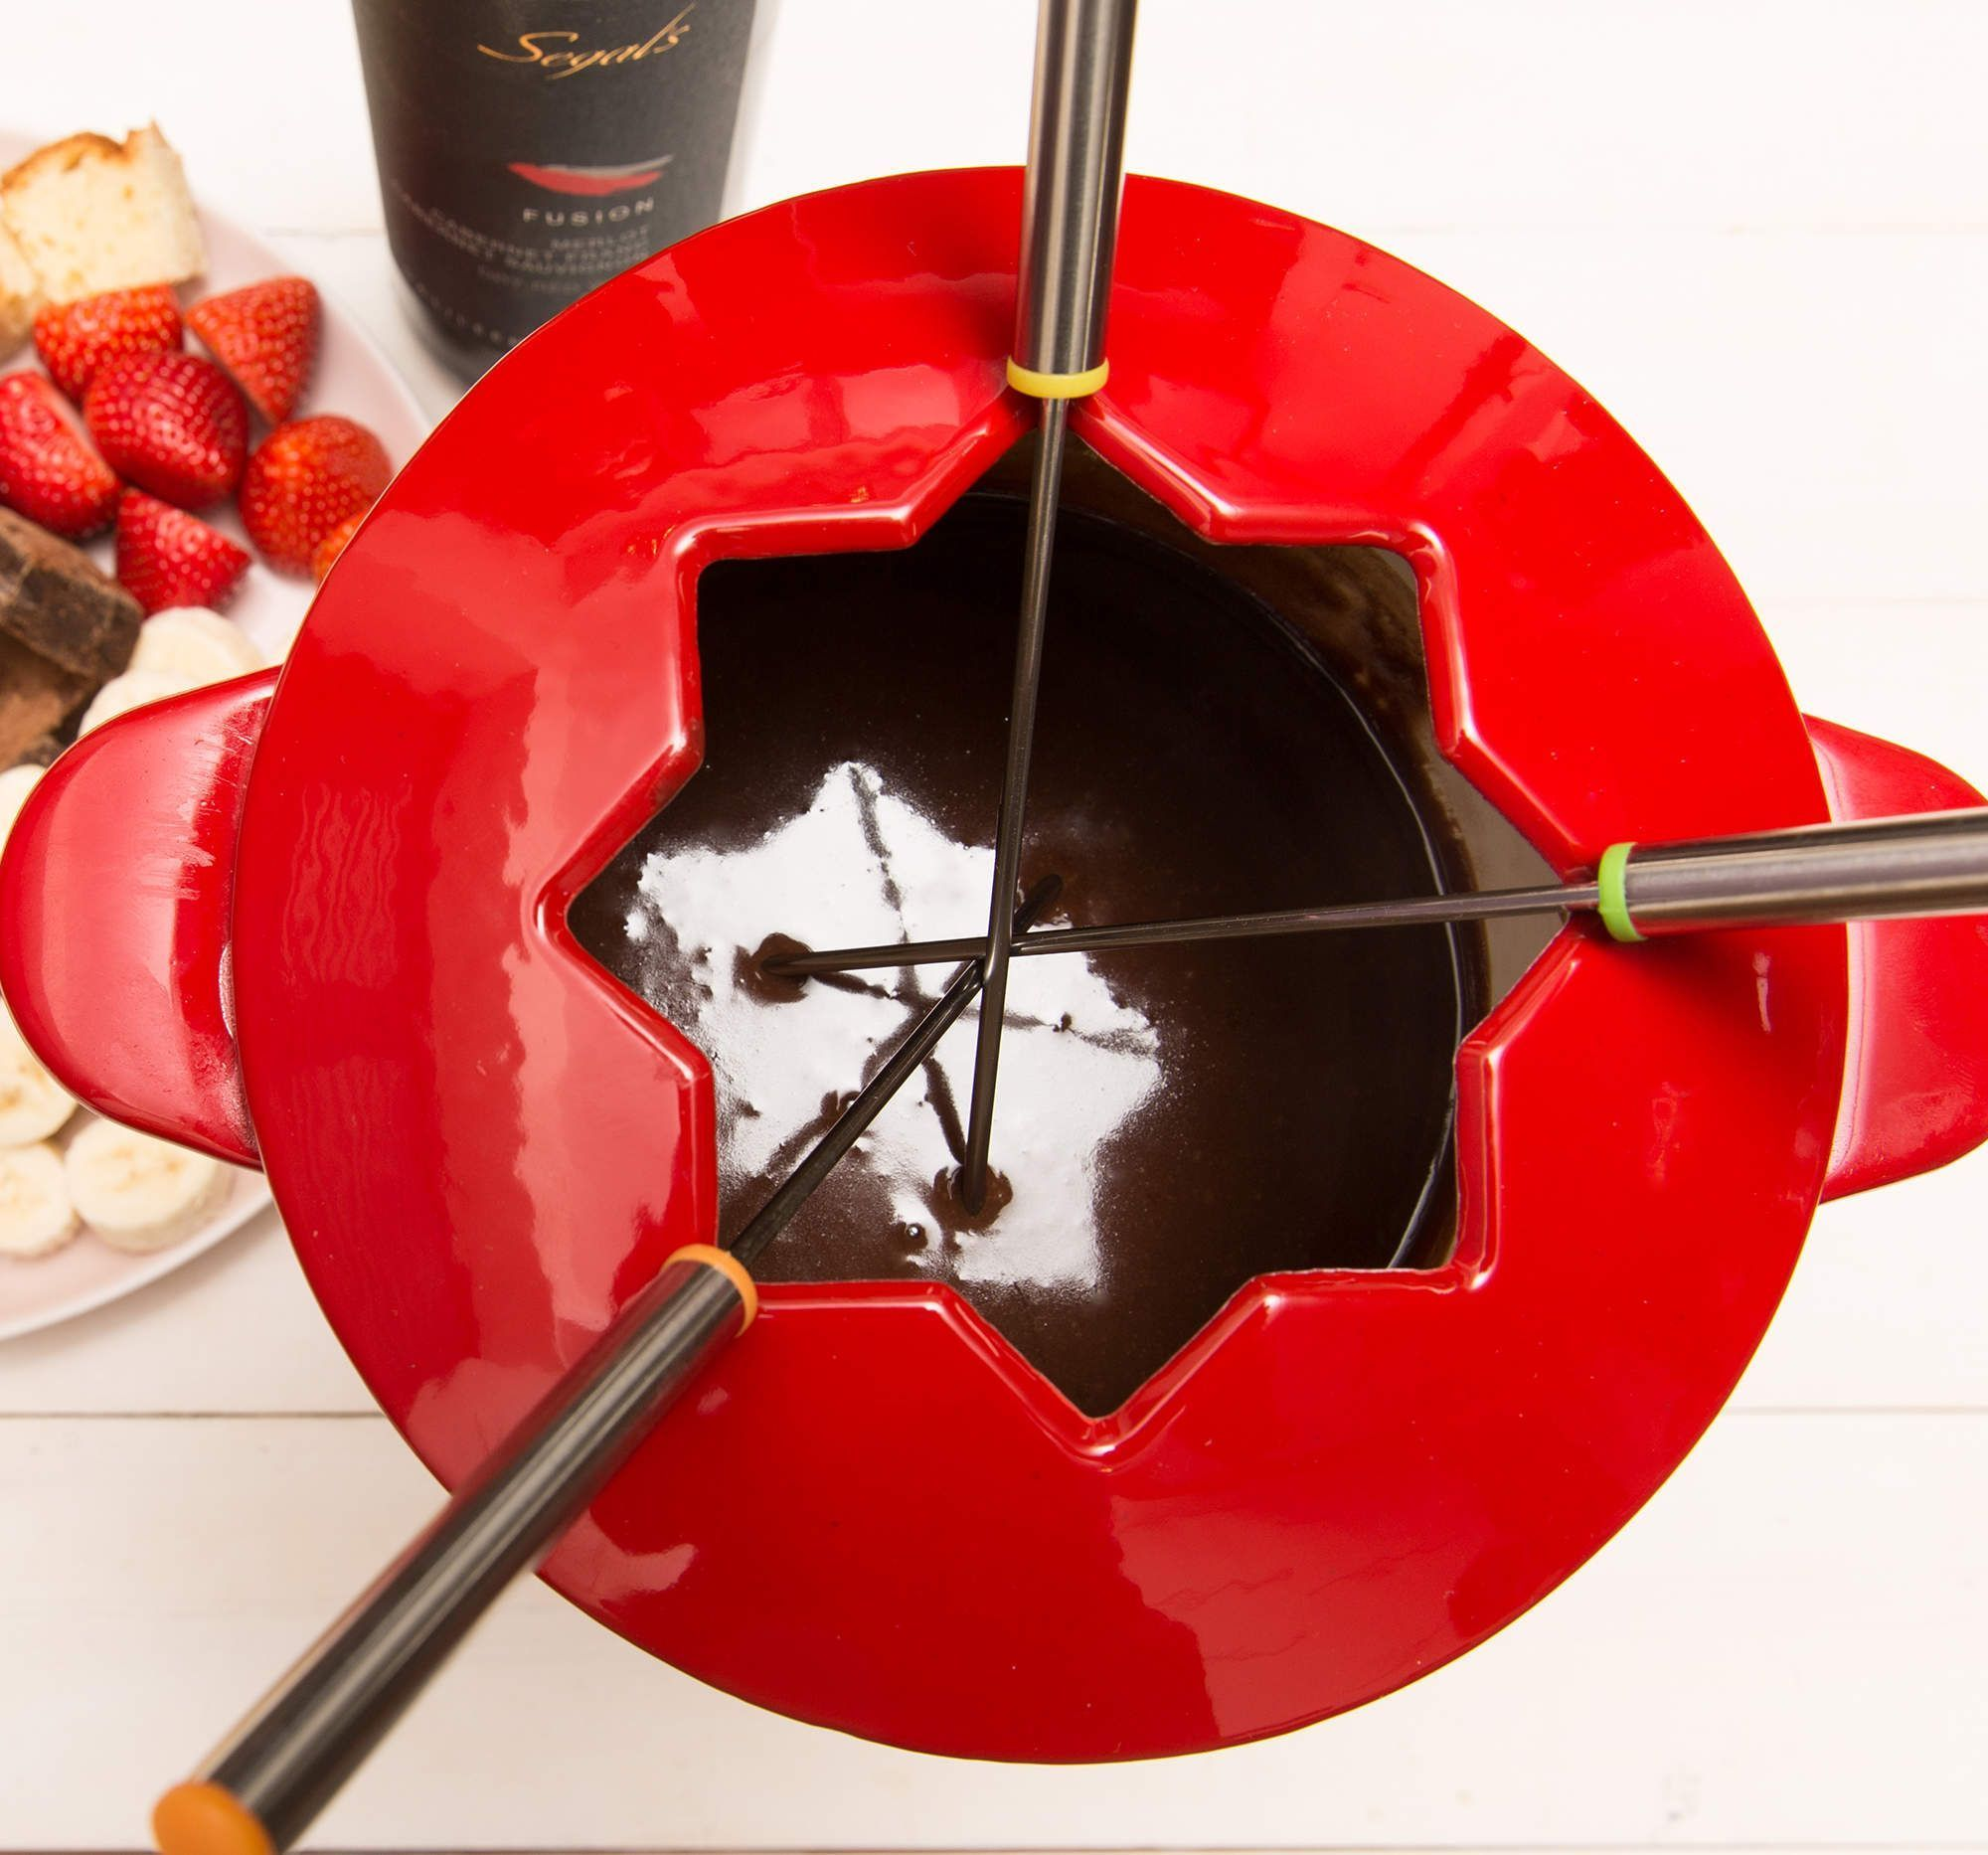 Cocoa vin #chocolatefonduerecipes The Best Damn Wine-Spiked Chocolate Fondue Recipe #chocolatefonduerecipes Cocoa vin #chocolatefonduerecipes The Best Damn Wine-Spiked Chocolate Fondue Recipe #chocolatefonduerecipes